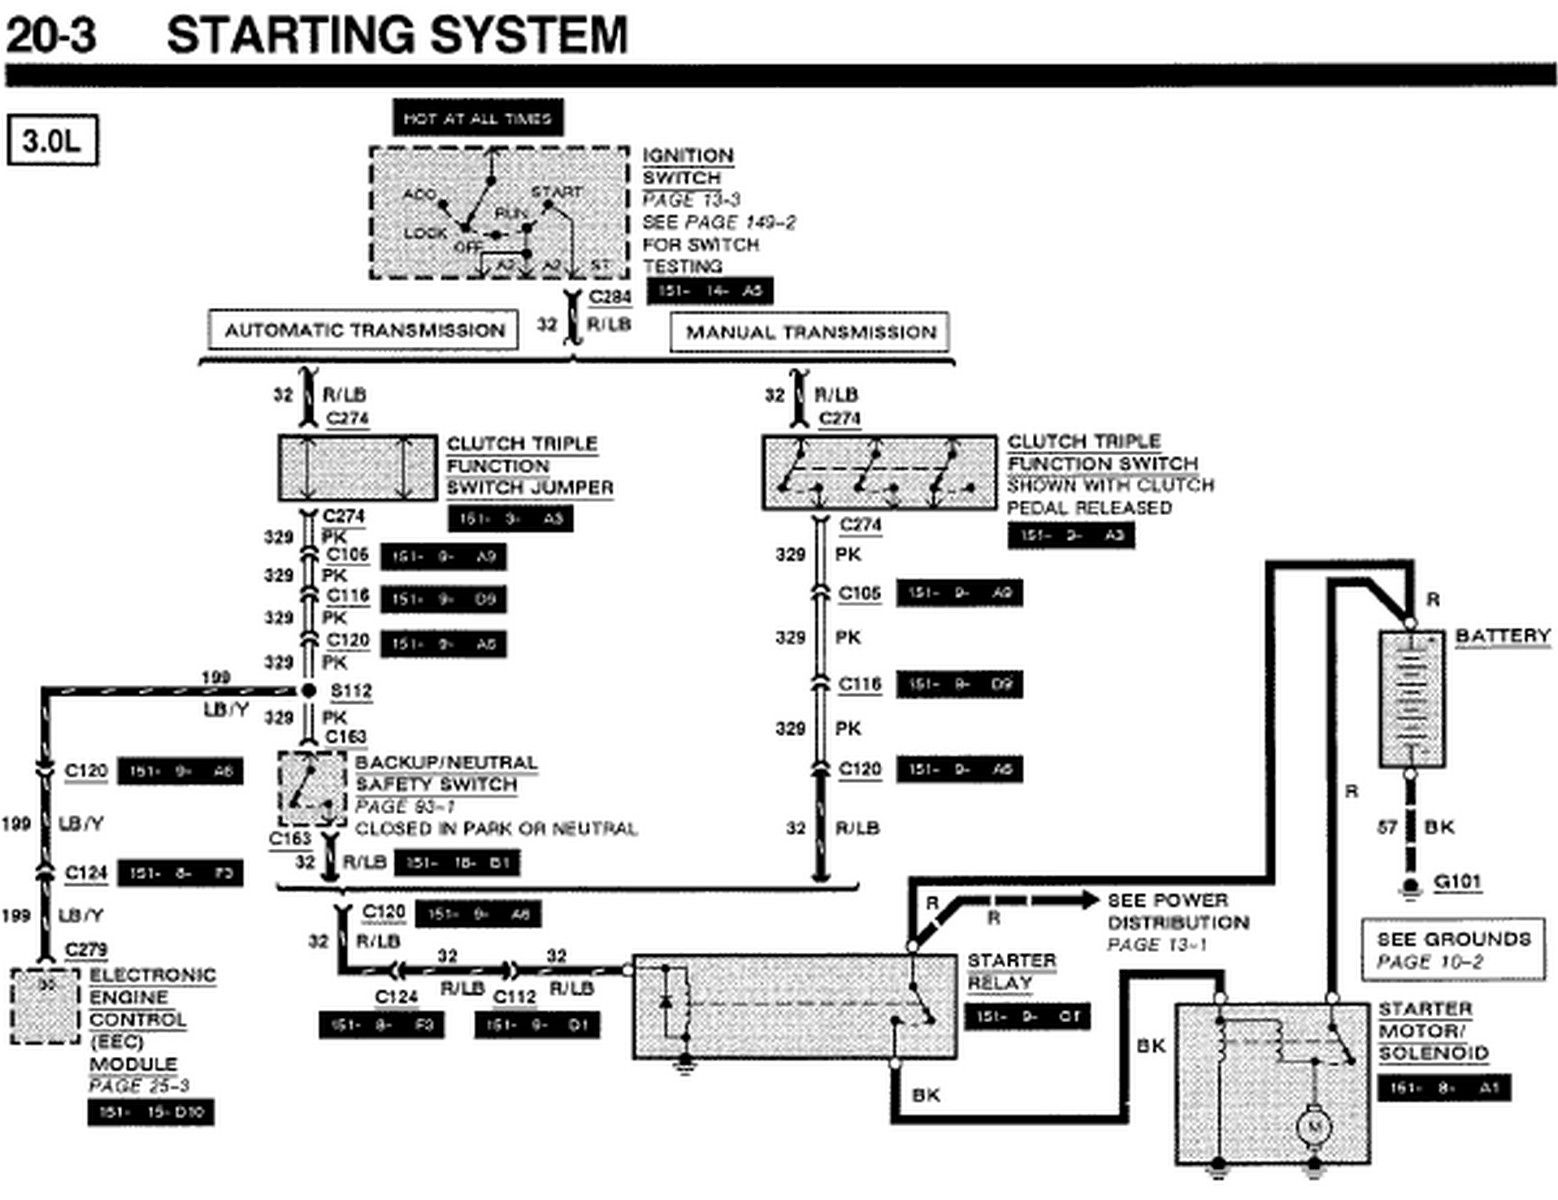 91220 92 Ford Explorer Wiring Diagram | Digital Resources on 1999 ford windstar fuse diagram, 05 ford explorer fuse box diagram, 92 ford explorer manual, 1999 explorer fuse panel diagram, 92 ford explorer seats, 2002 ford explorer engine diagram, 1999 ford explorer engine diagram, 1999 ford explorer fuse diagram, 2000 ford explorer fuse diagram, 95 ford explorer fuse box diagram, 1999 ford explorer intake diagram, 98 ford explorer fuse diagram, 1999 ford explorer parts diagram, 92 ford explorer engine, 92 ford explorer parts, 1999 ford explorer ac diagram, 2003 ford explorer fuse diagram, 2012 ford explorer fuse diagram,